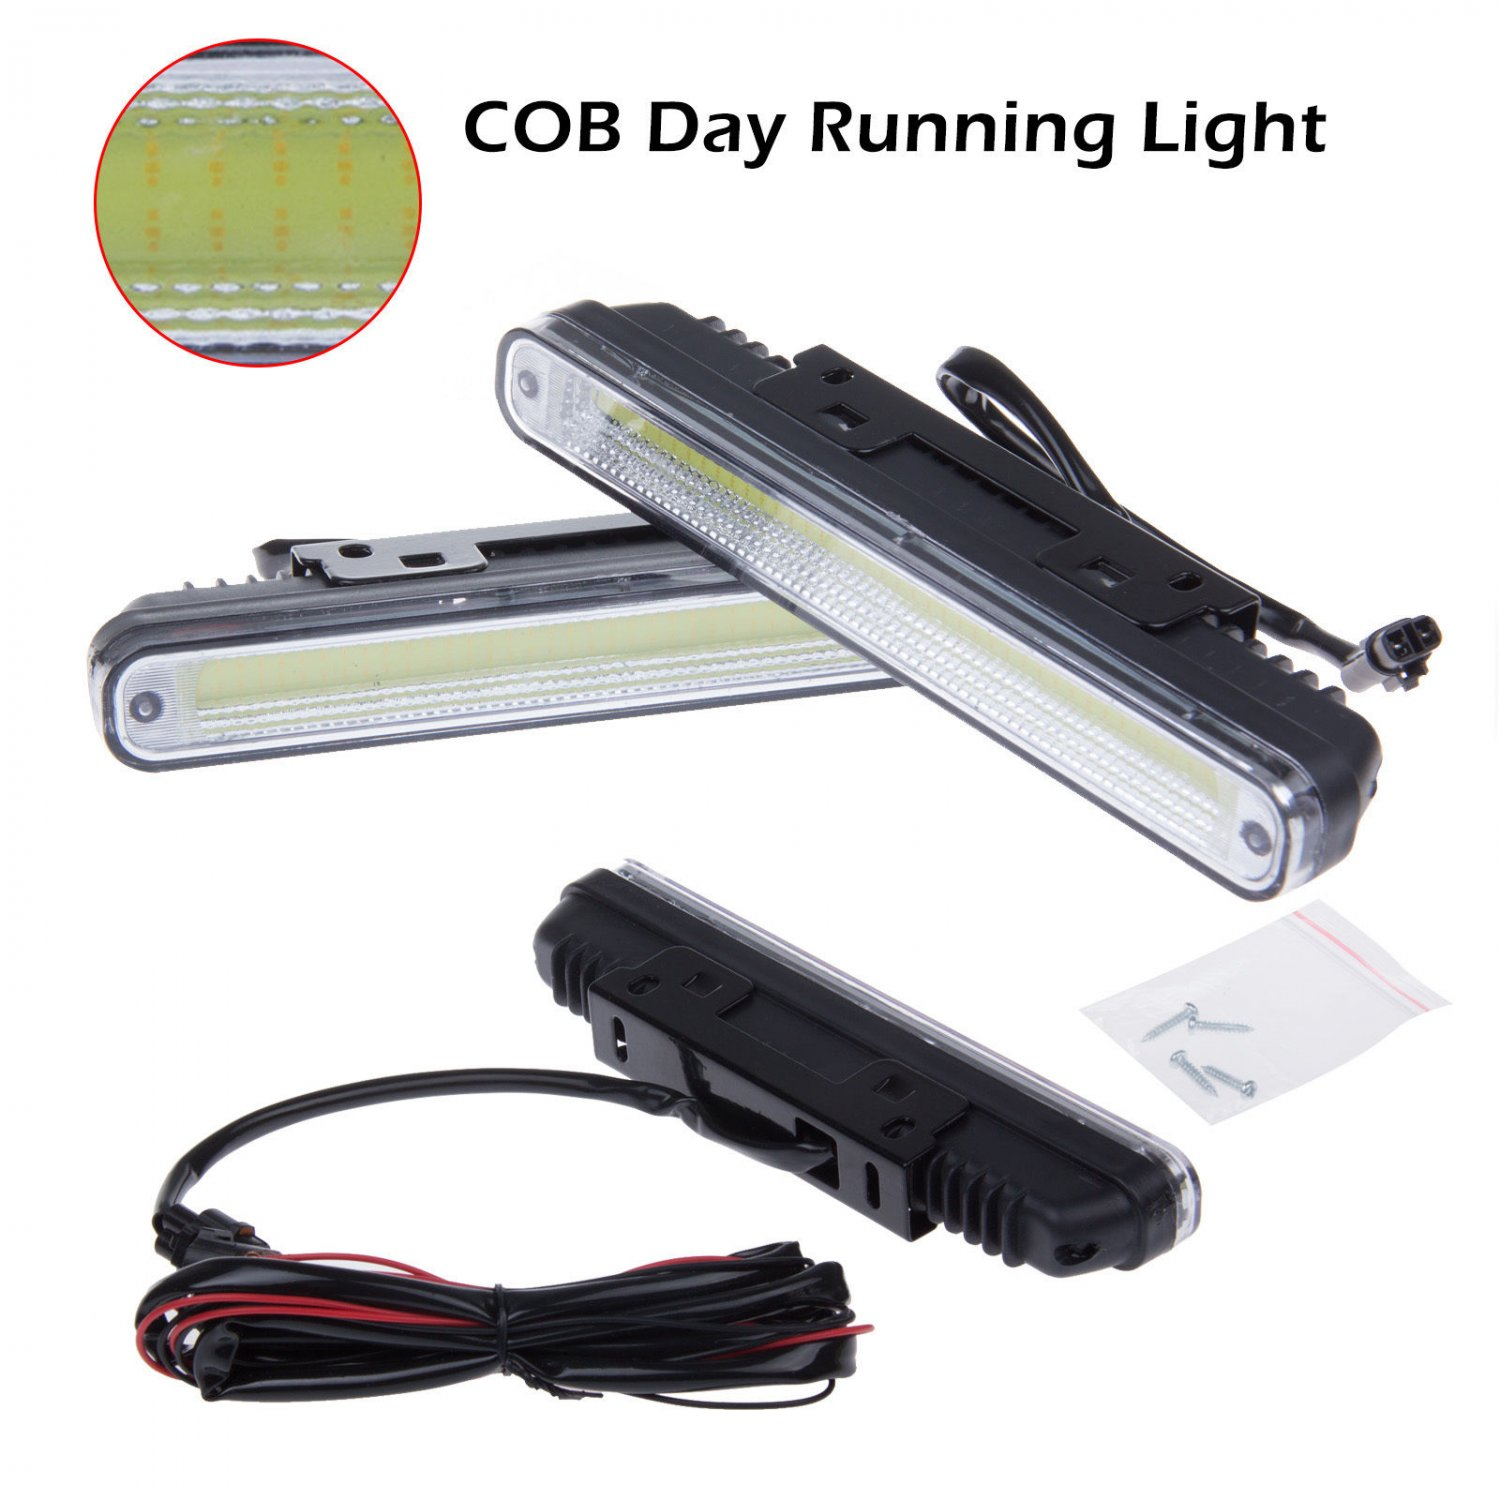 2pcs 12V COB LED DRL Daytime LED Fog Running Driving Light Lamp Bulb Waterproof